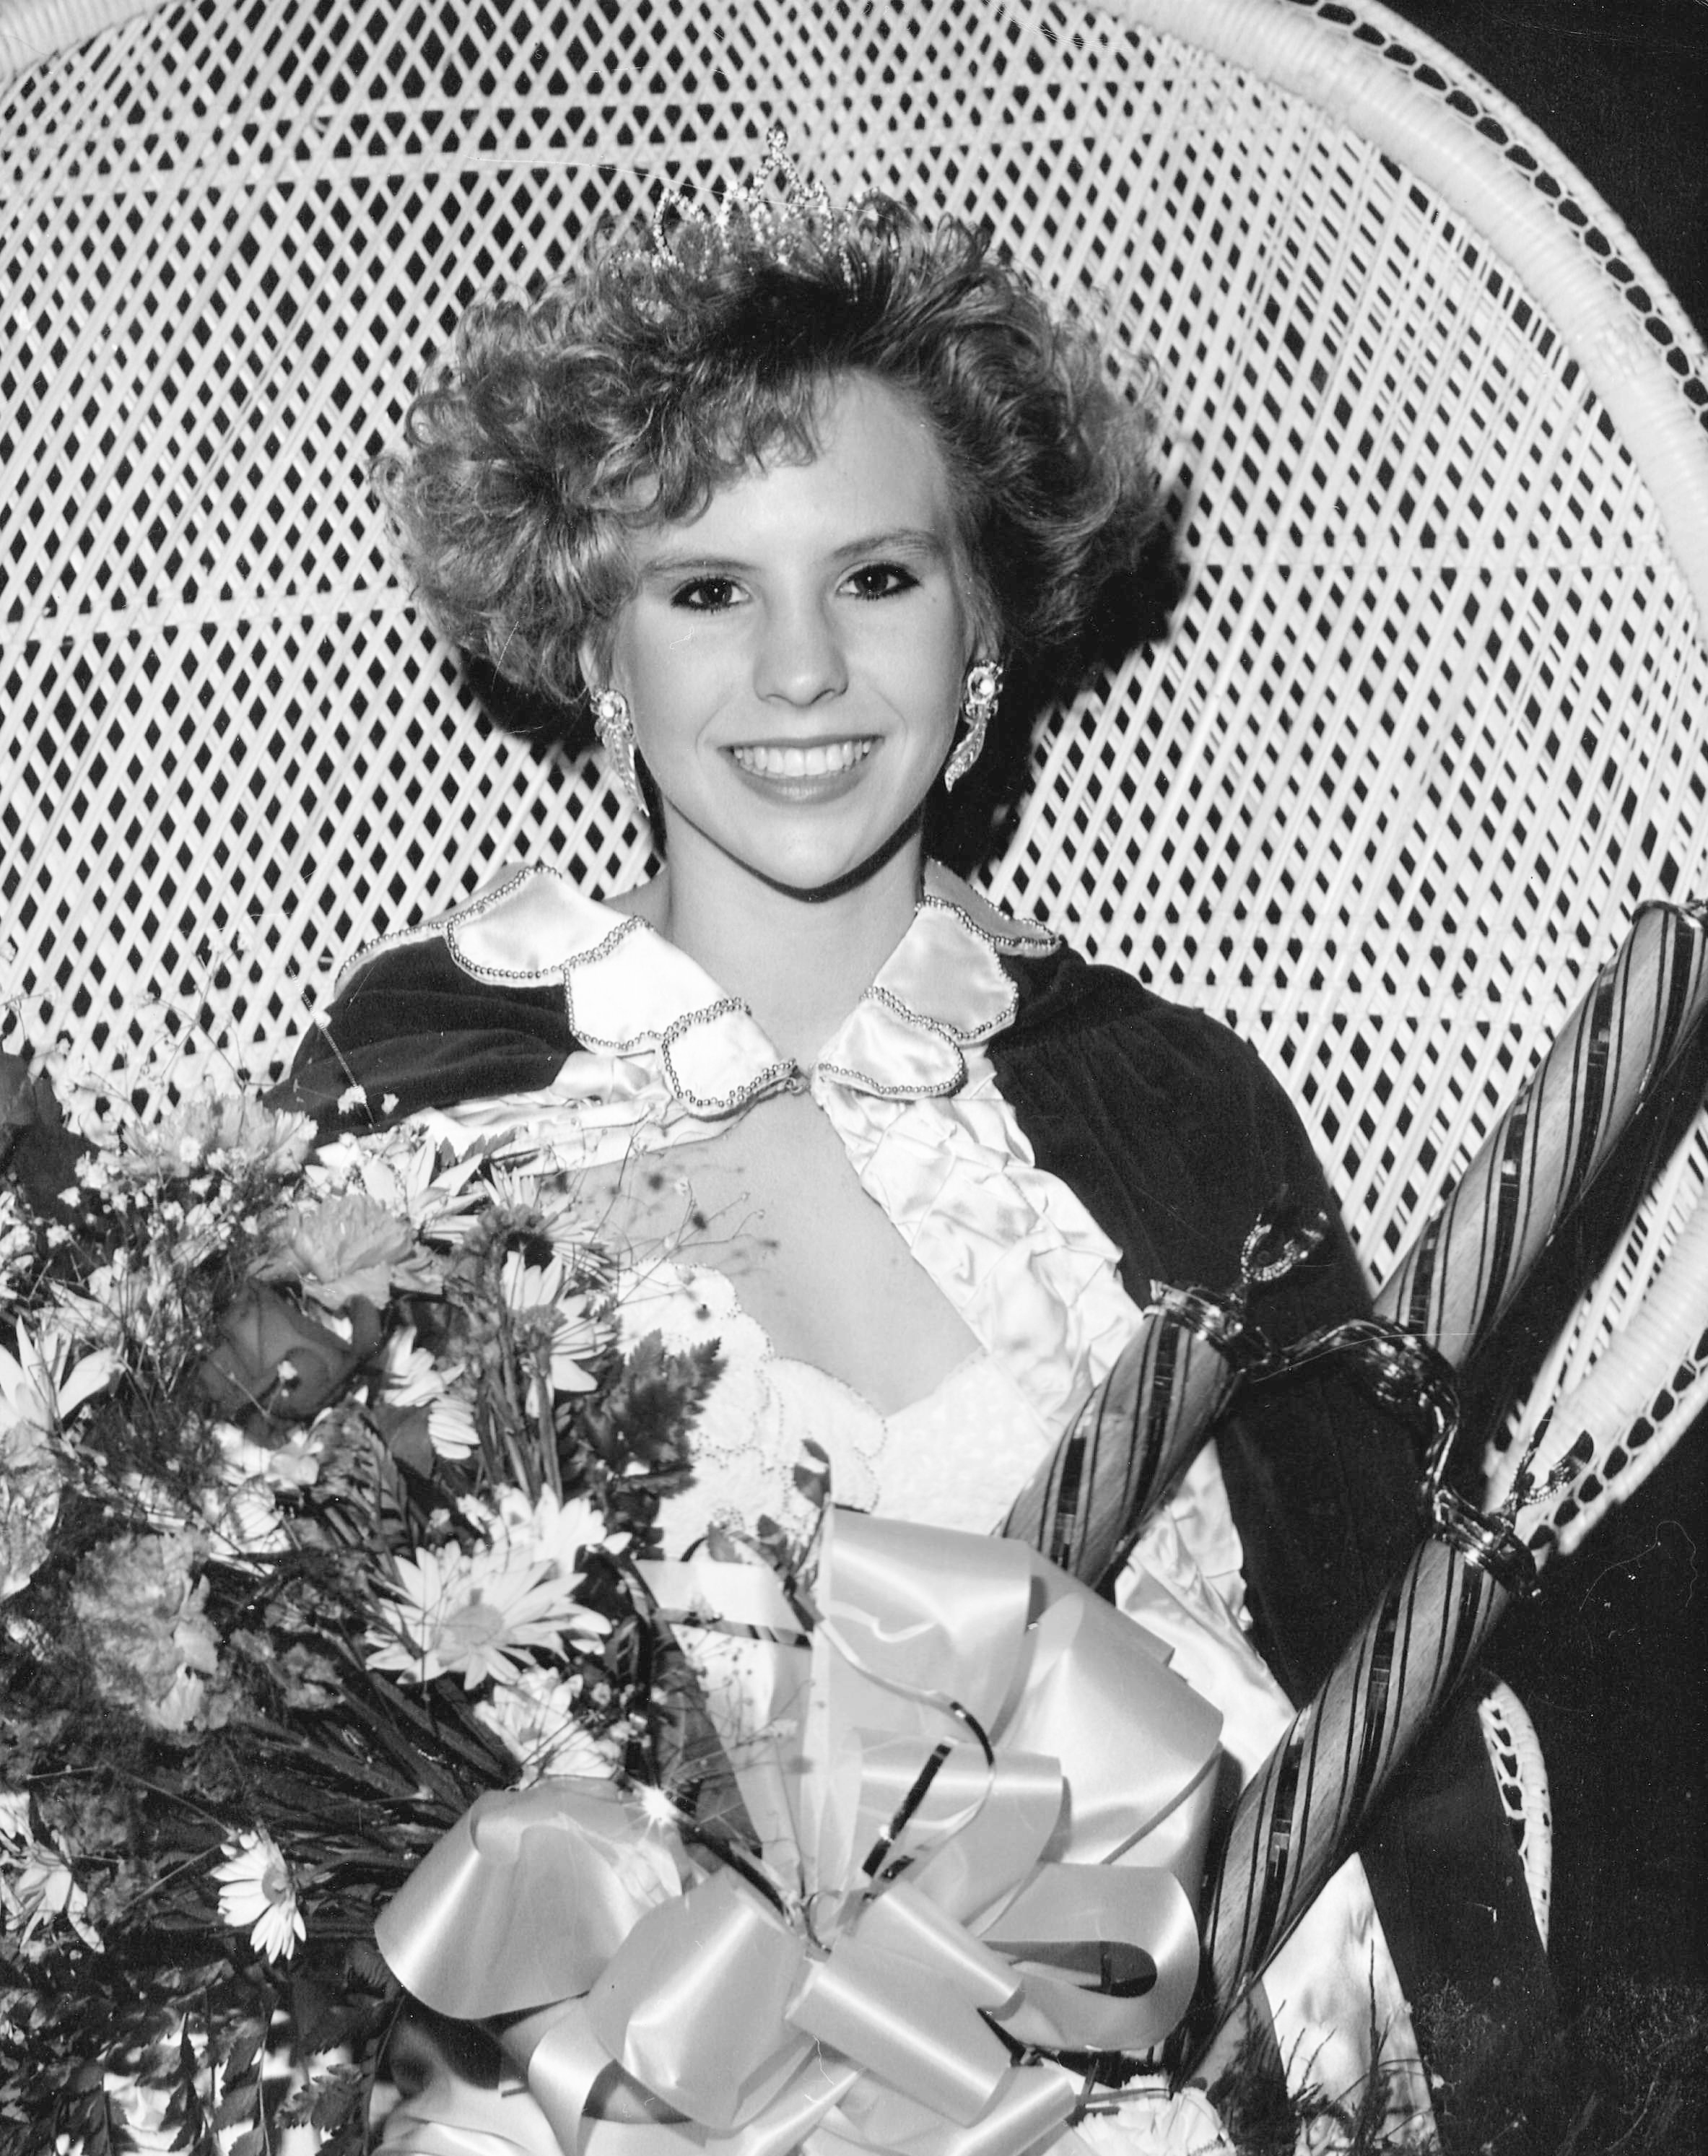 Stacy Mixsin Mason - Miss Buna 1989